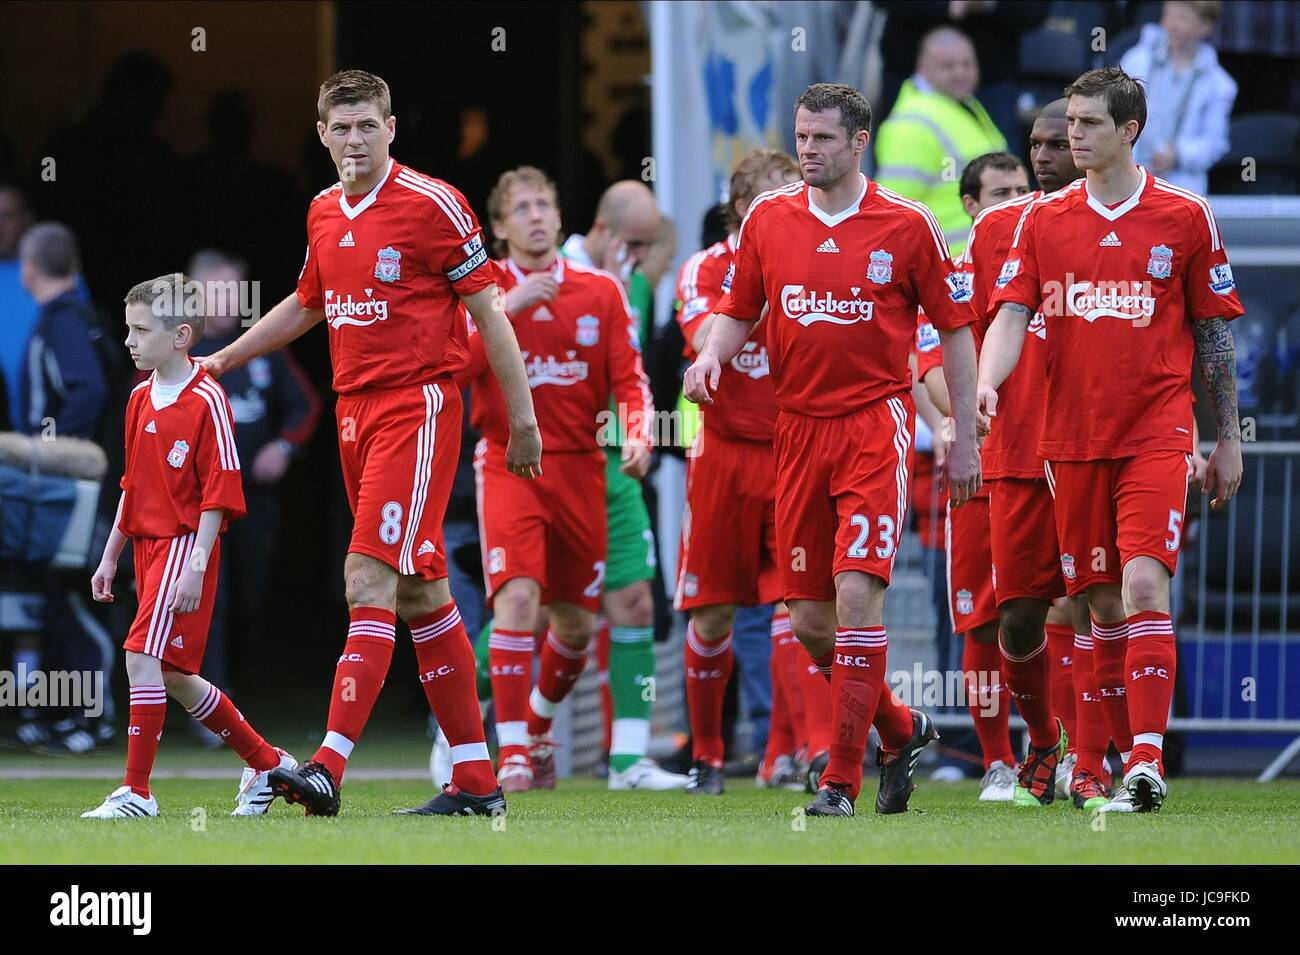 STEVEN GERRARD LEADS HIS TEAM HULL V LIVERPOOL KC STADIUM HULL ENGLAND 09 May 2010 - Stock Image